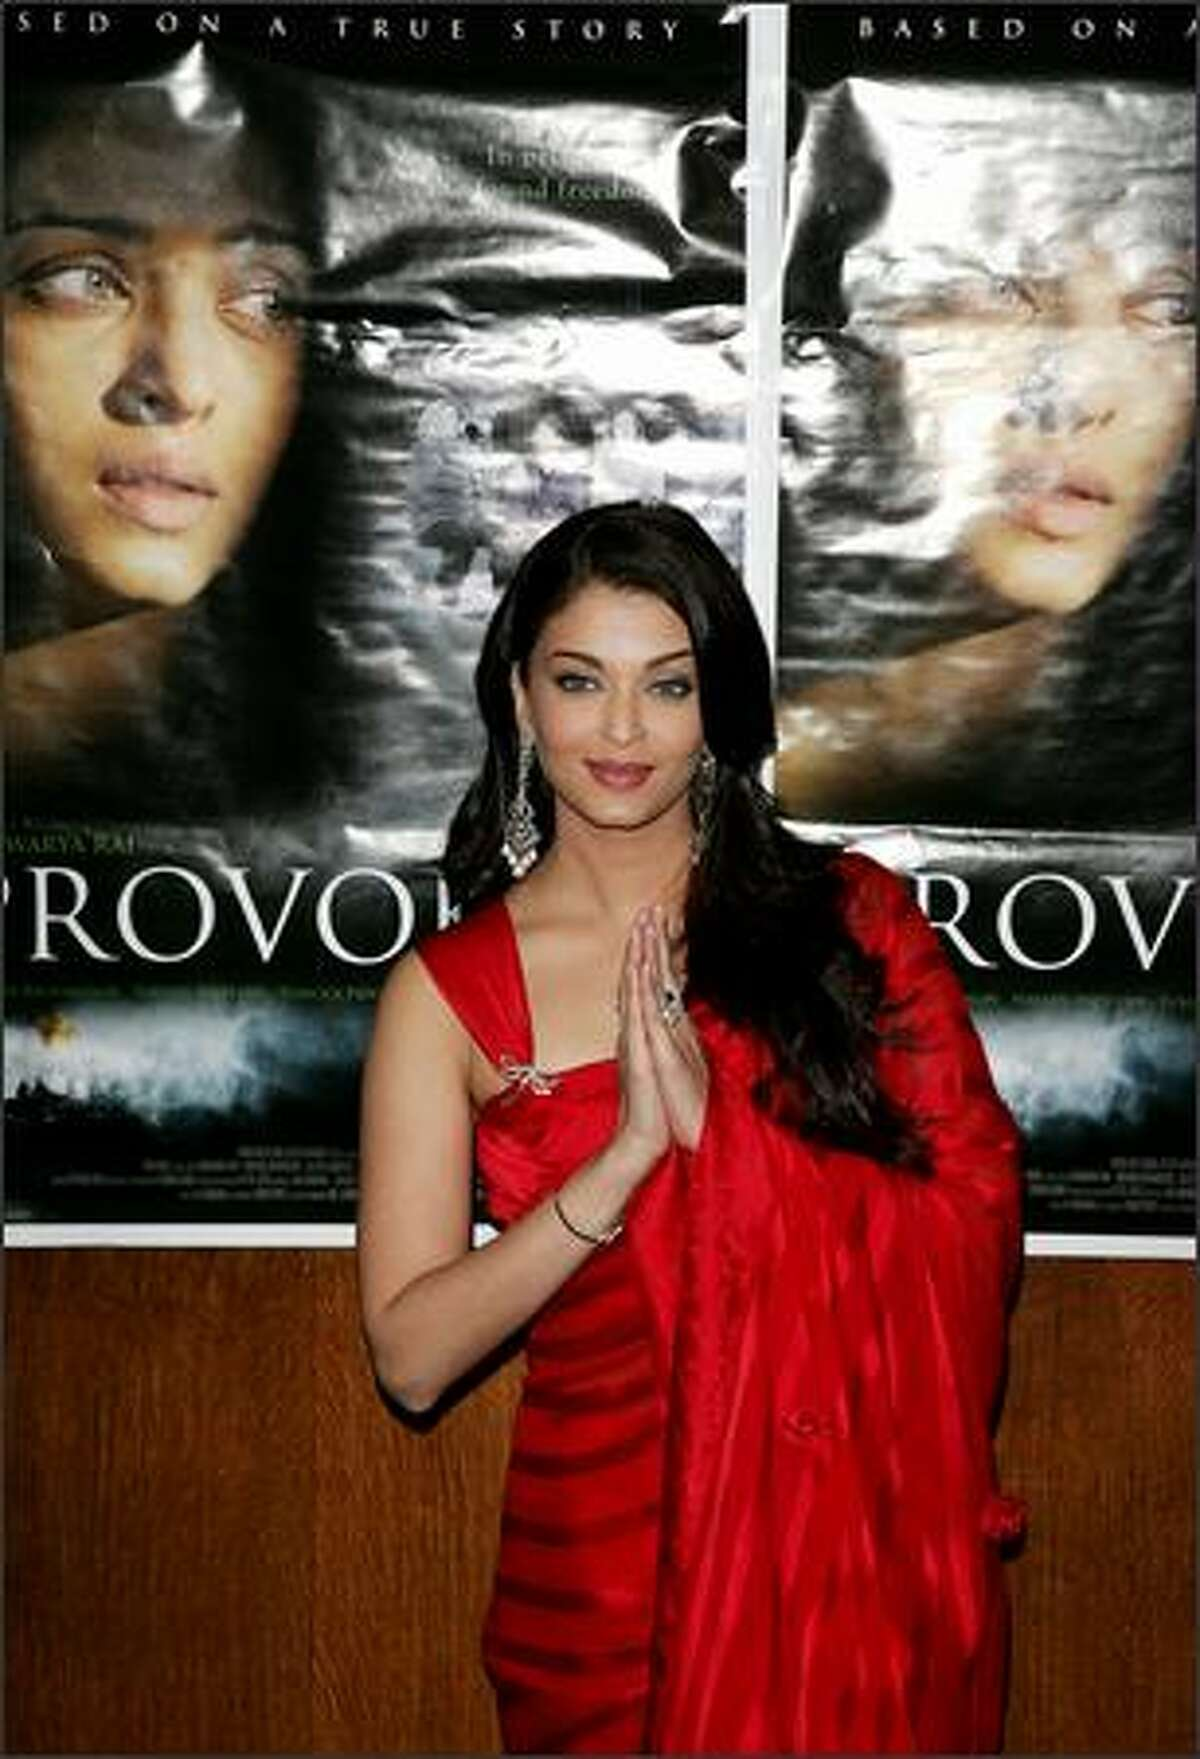 Bollywood actress and L'Oreal spokes model girl Aishwarya Rai poses for media during the launch of her film 'Provoked' in London, Tuesday. The film is based on Kiranjit Ahluwalia's autobiography 'Circle of Light' by Rahila Gupta which depicts her struggle in an abusive marriage. (AP Photo/Sang Tan)